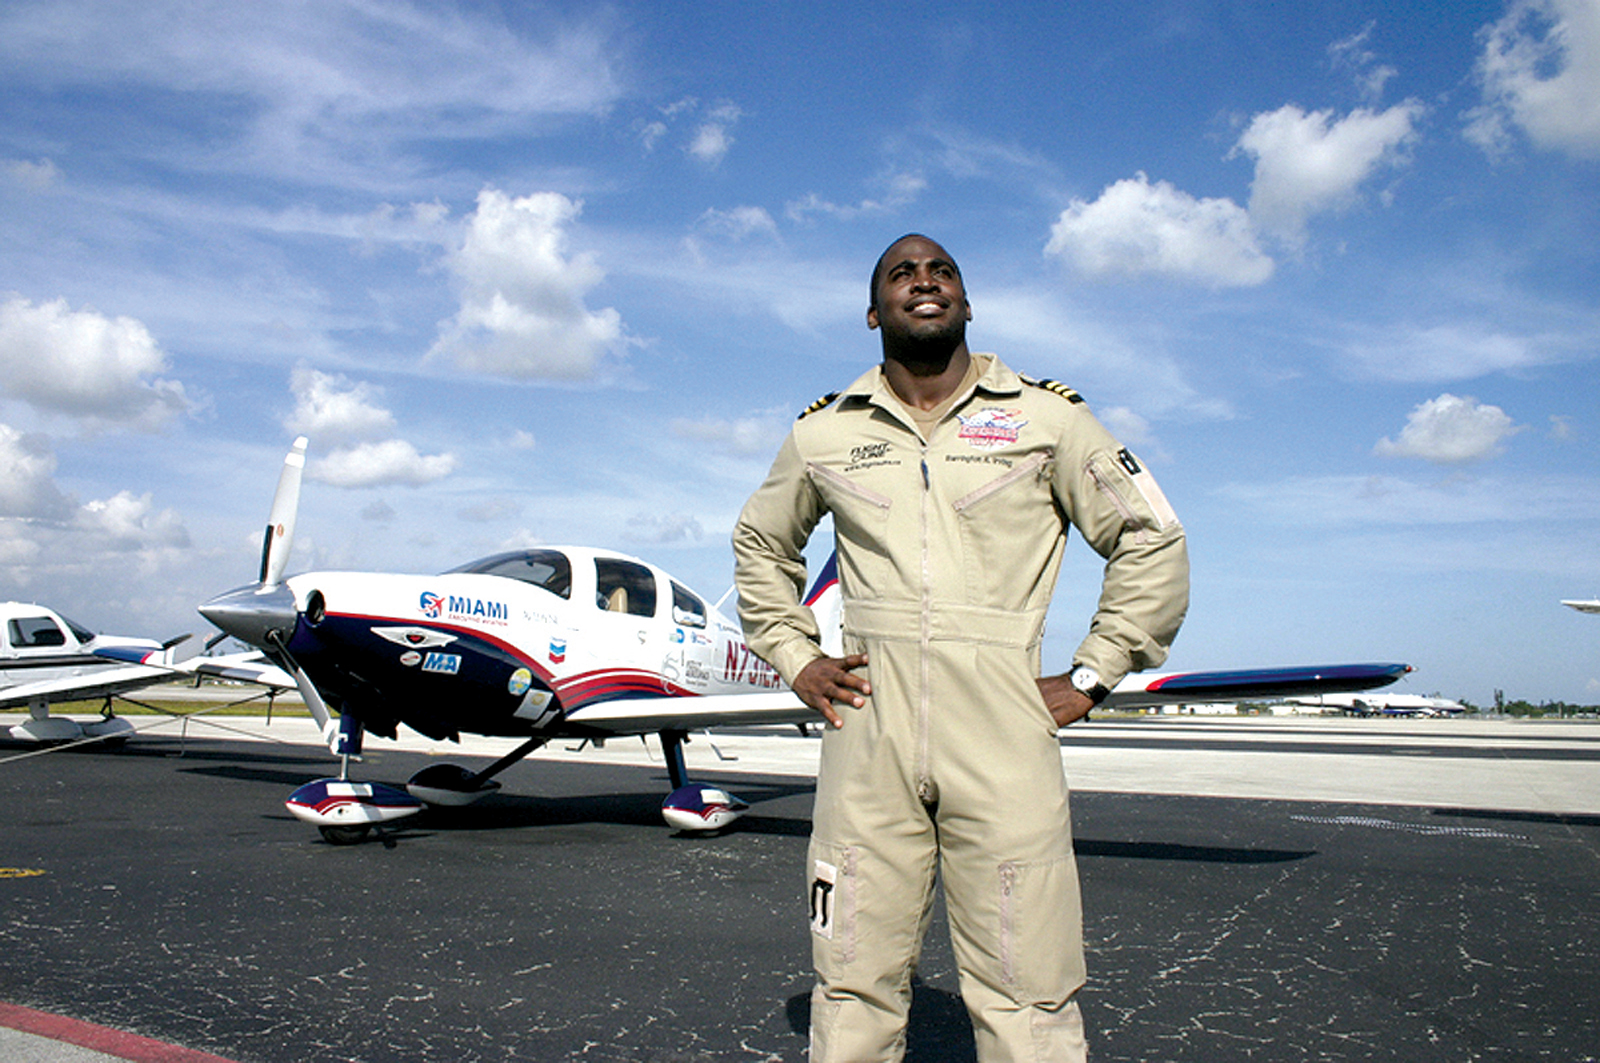 Inspiration on the Wing: Around the World and Back with Barrington Irving